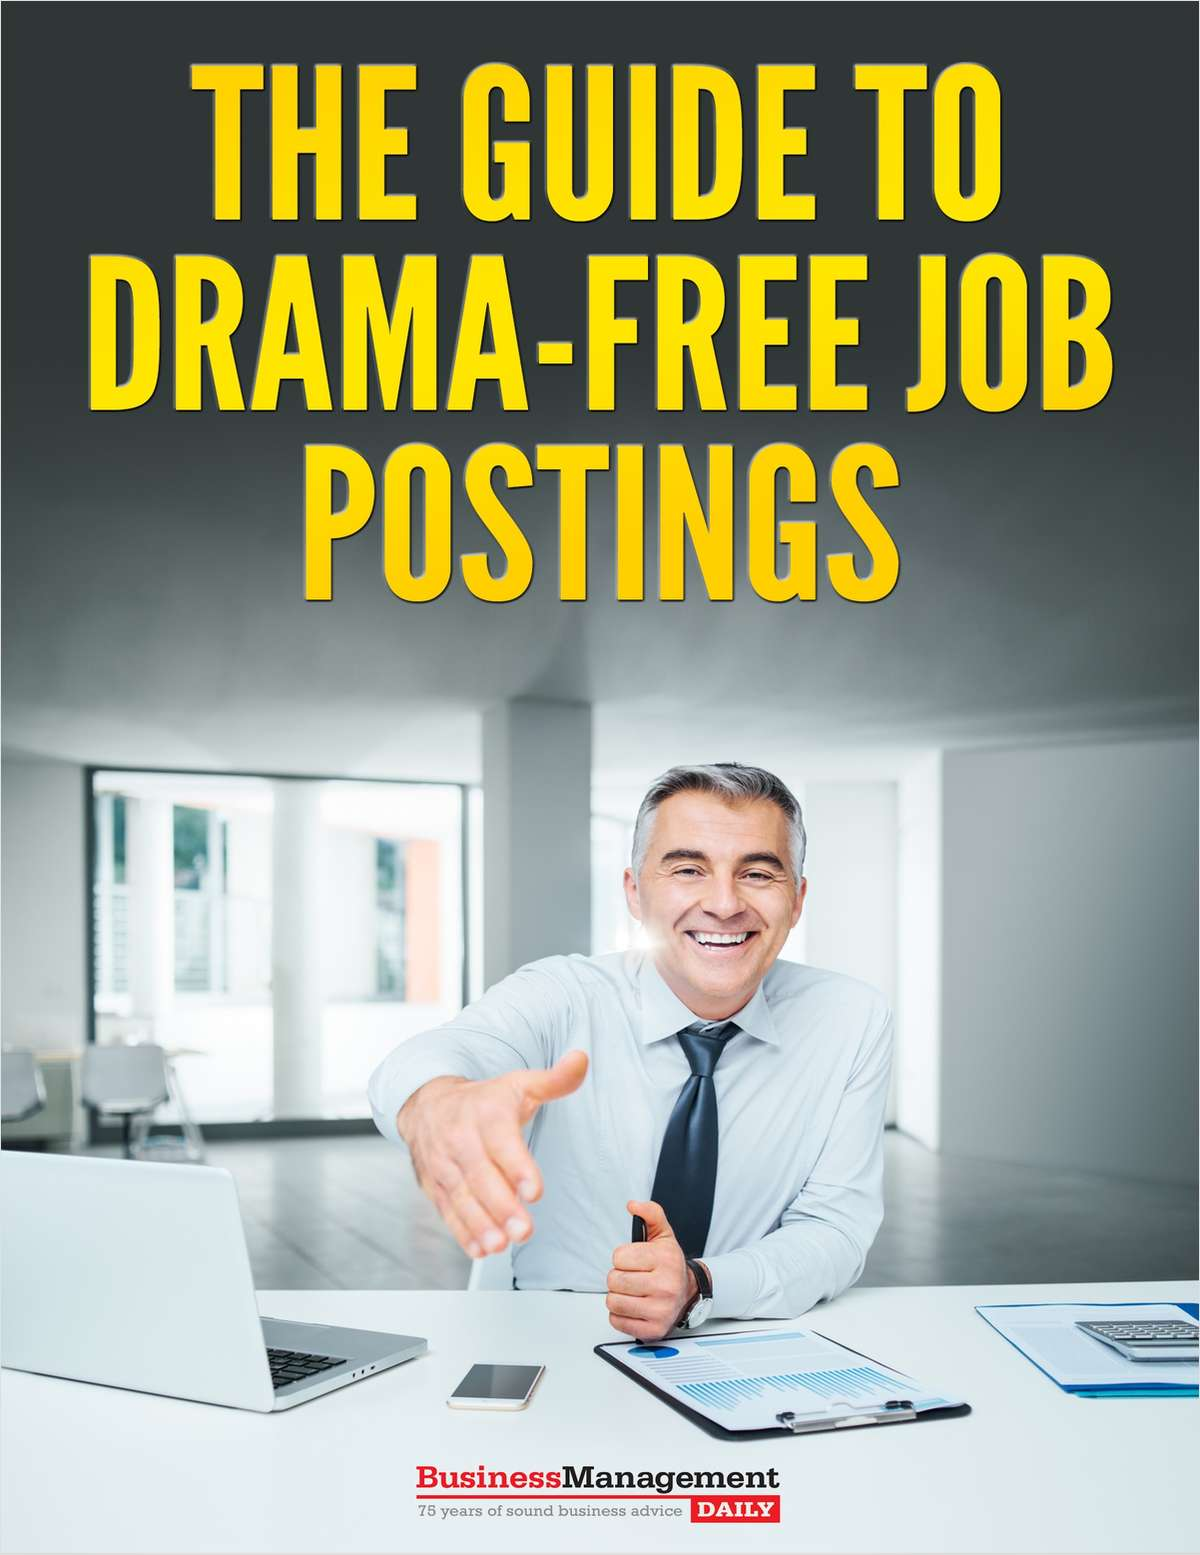 The Guide to Drama-Free Job Postings